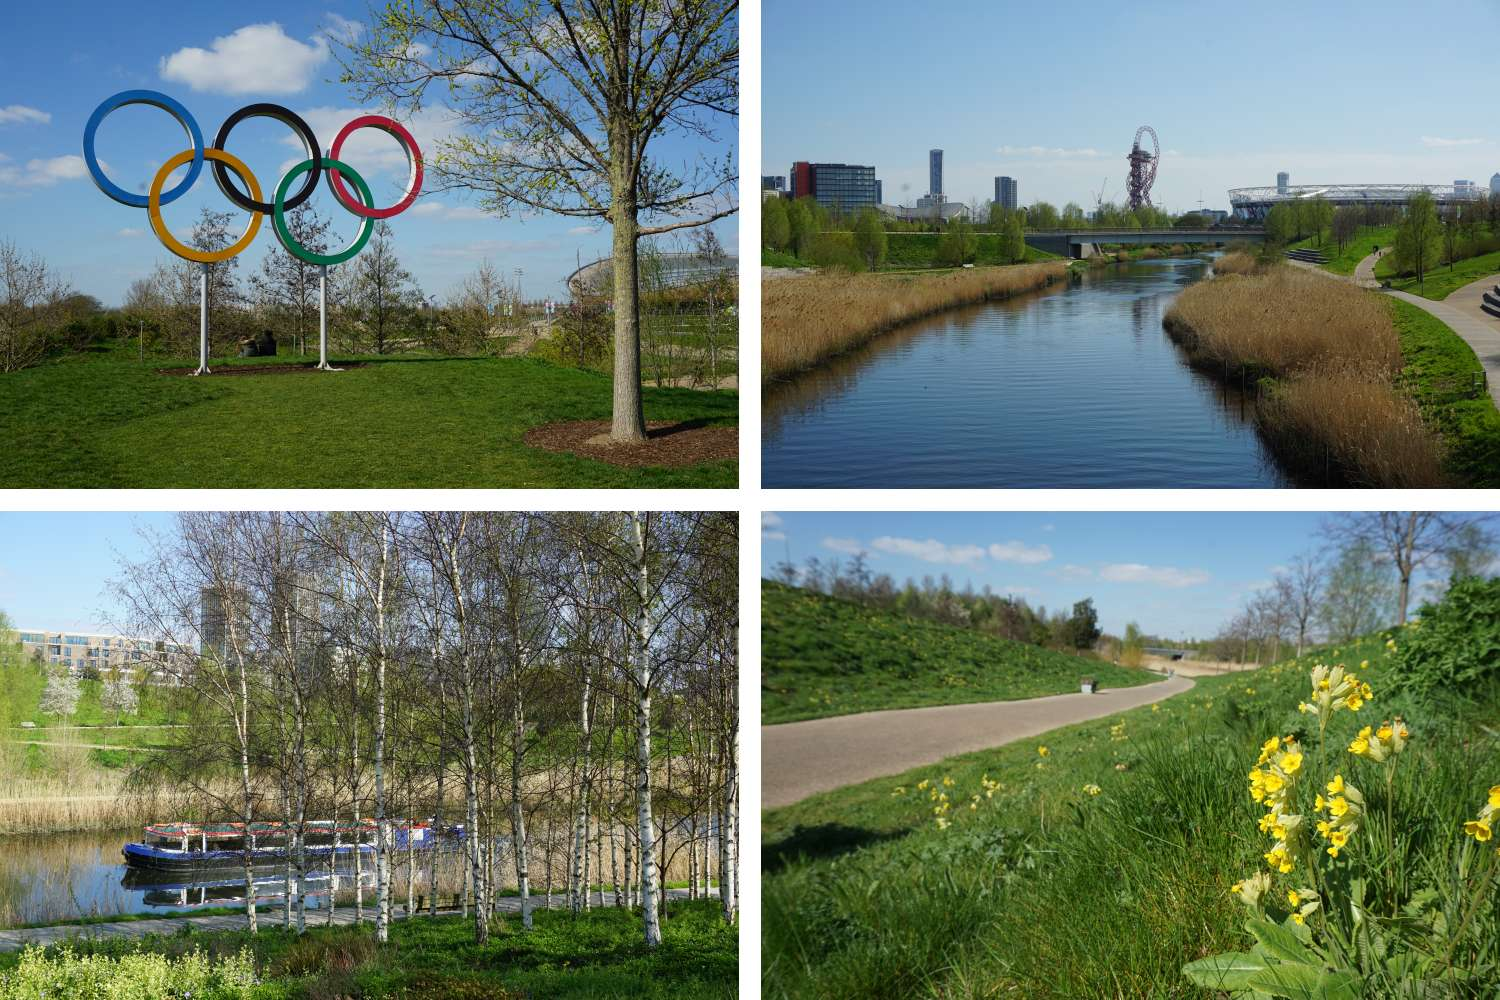 The Queen Elizabeth Olympic Park in London Stratford